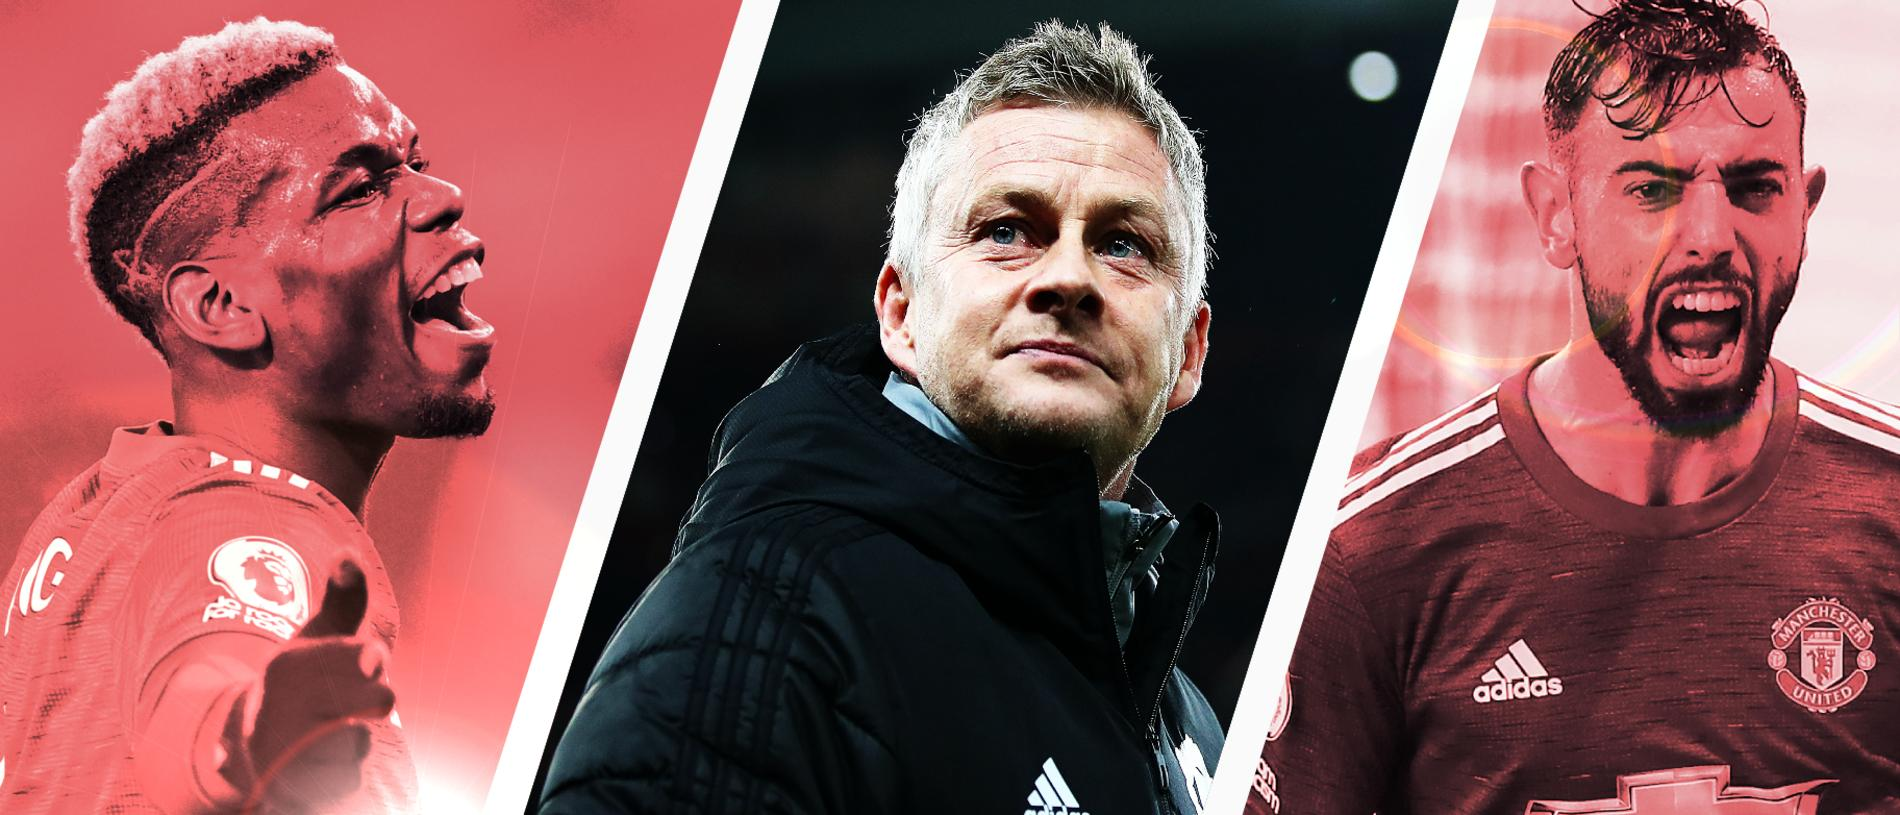 Ole Gunnar Solskjaer has turned things around at Manchester United.